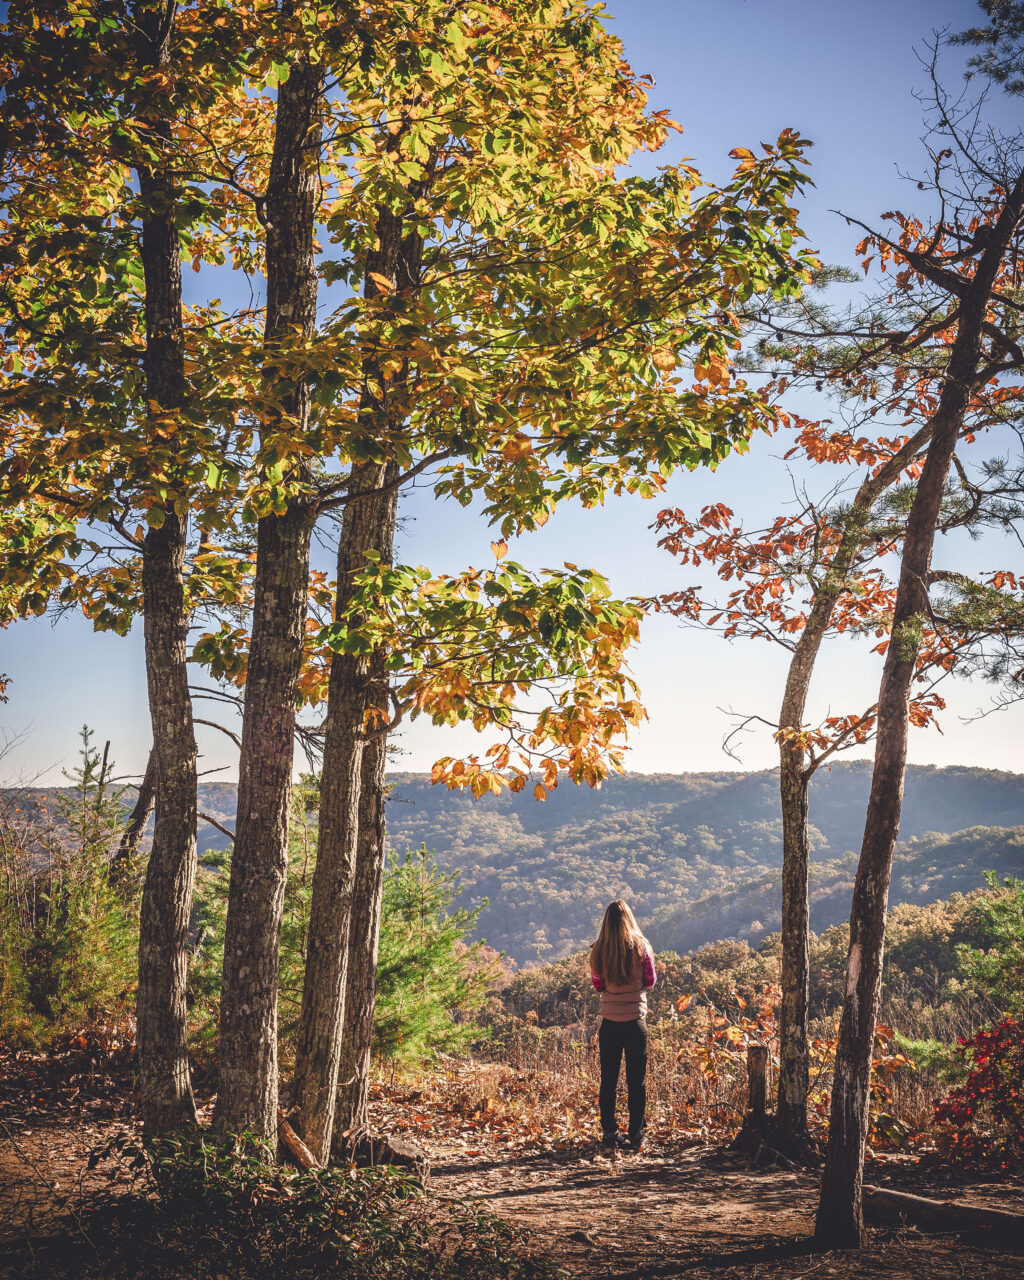 Woman hiker on Auxier Ridge Trail in wooded scene overlooking Appalachian vistas in the Daniel Boone National Forest in the Red River Gorge Geological Area of Kentucky.